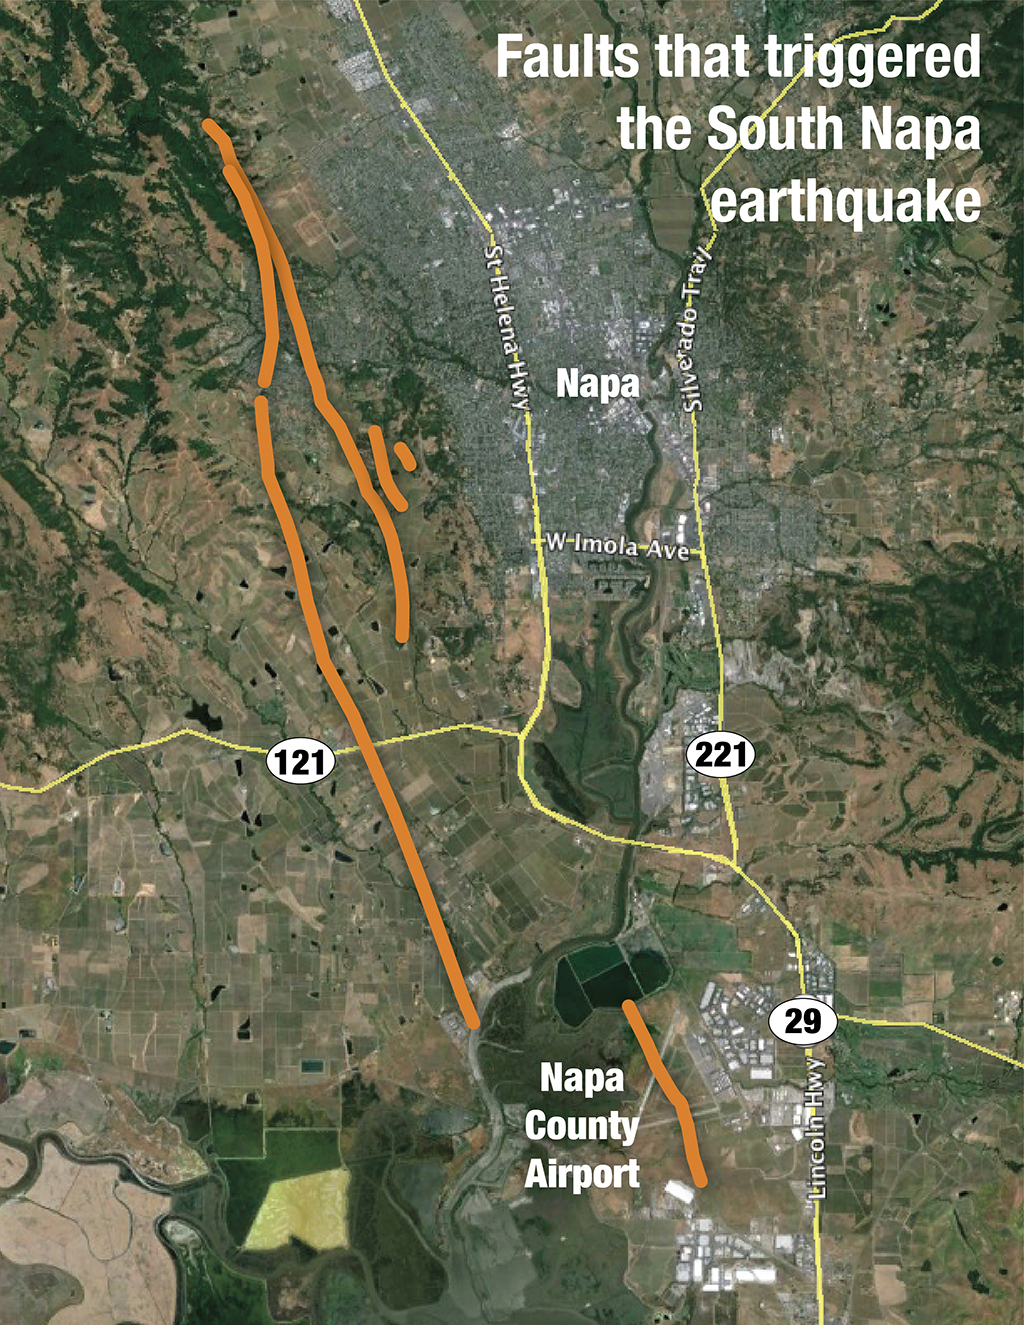 Orange lines show where surface clues reveal the likely source faults for the South Napa Earthquake. Some areas reveal up to about 18 inches of lateral displacement. (USGS)